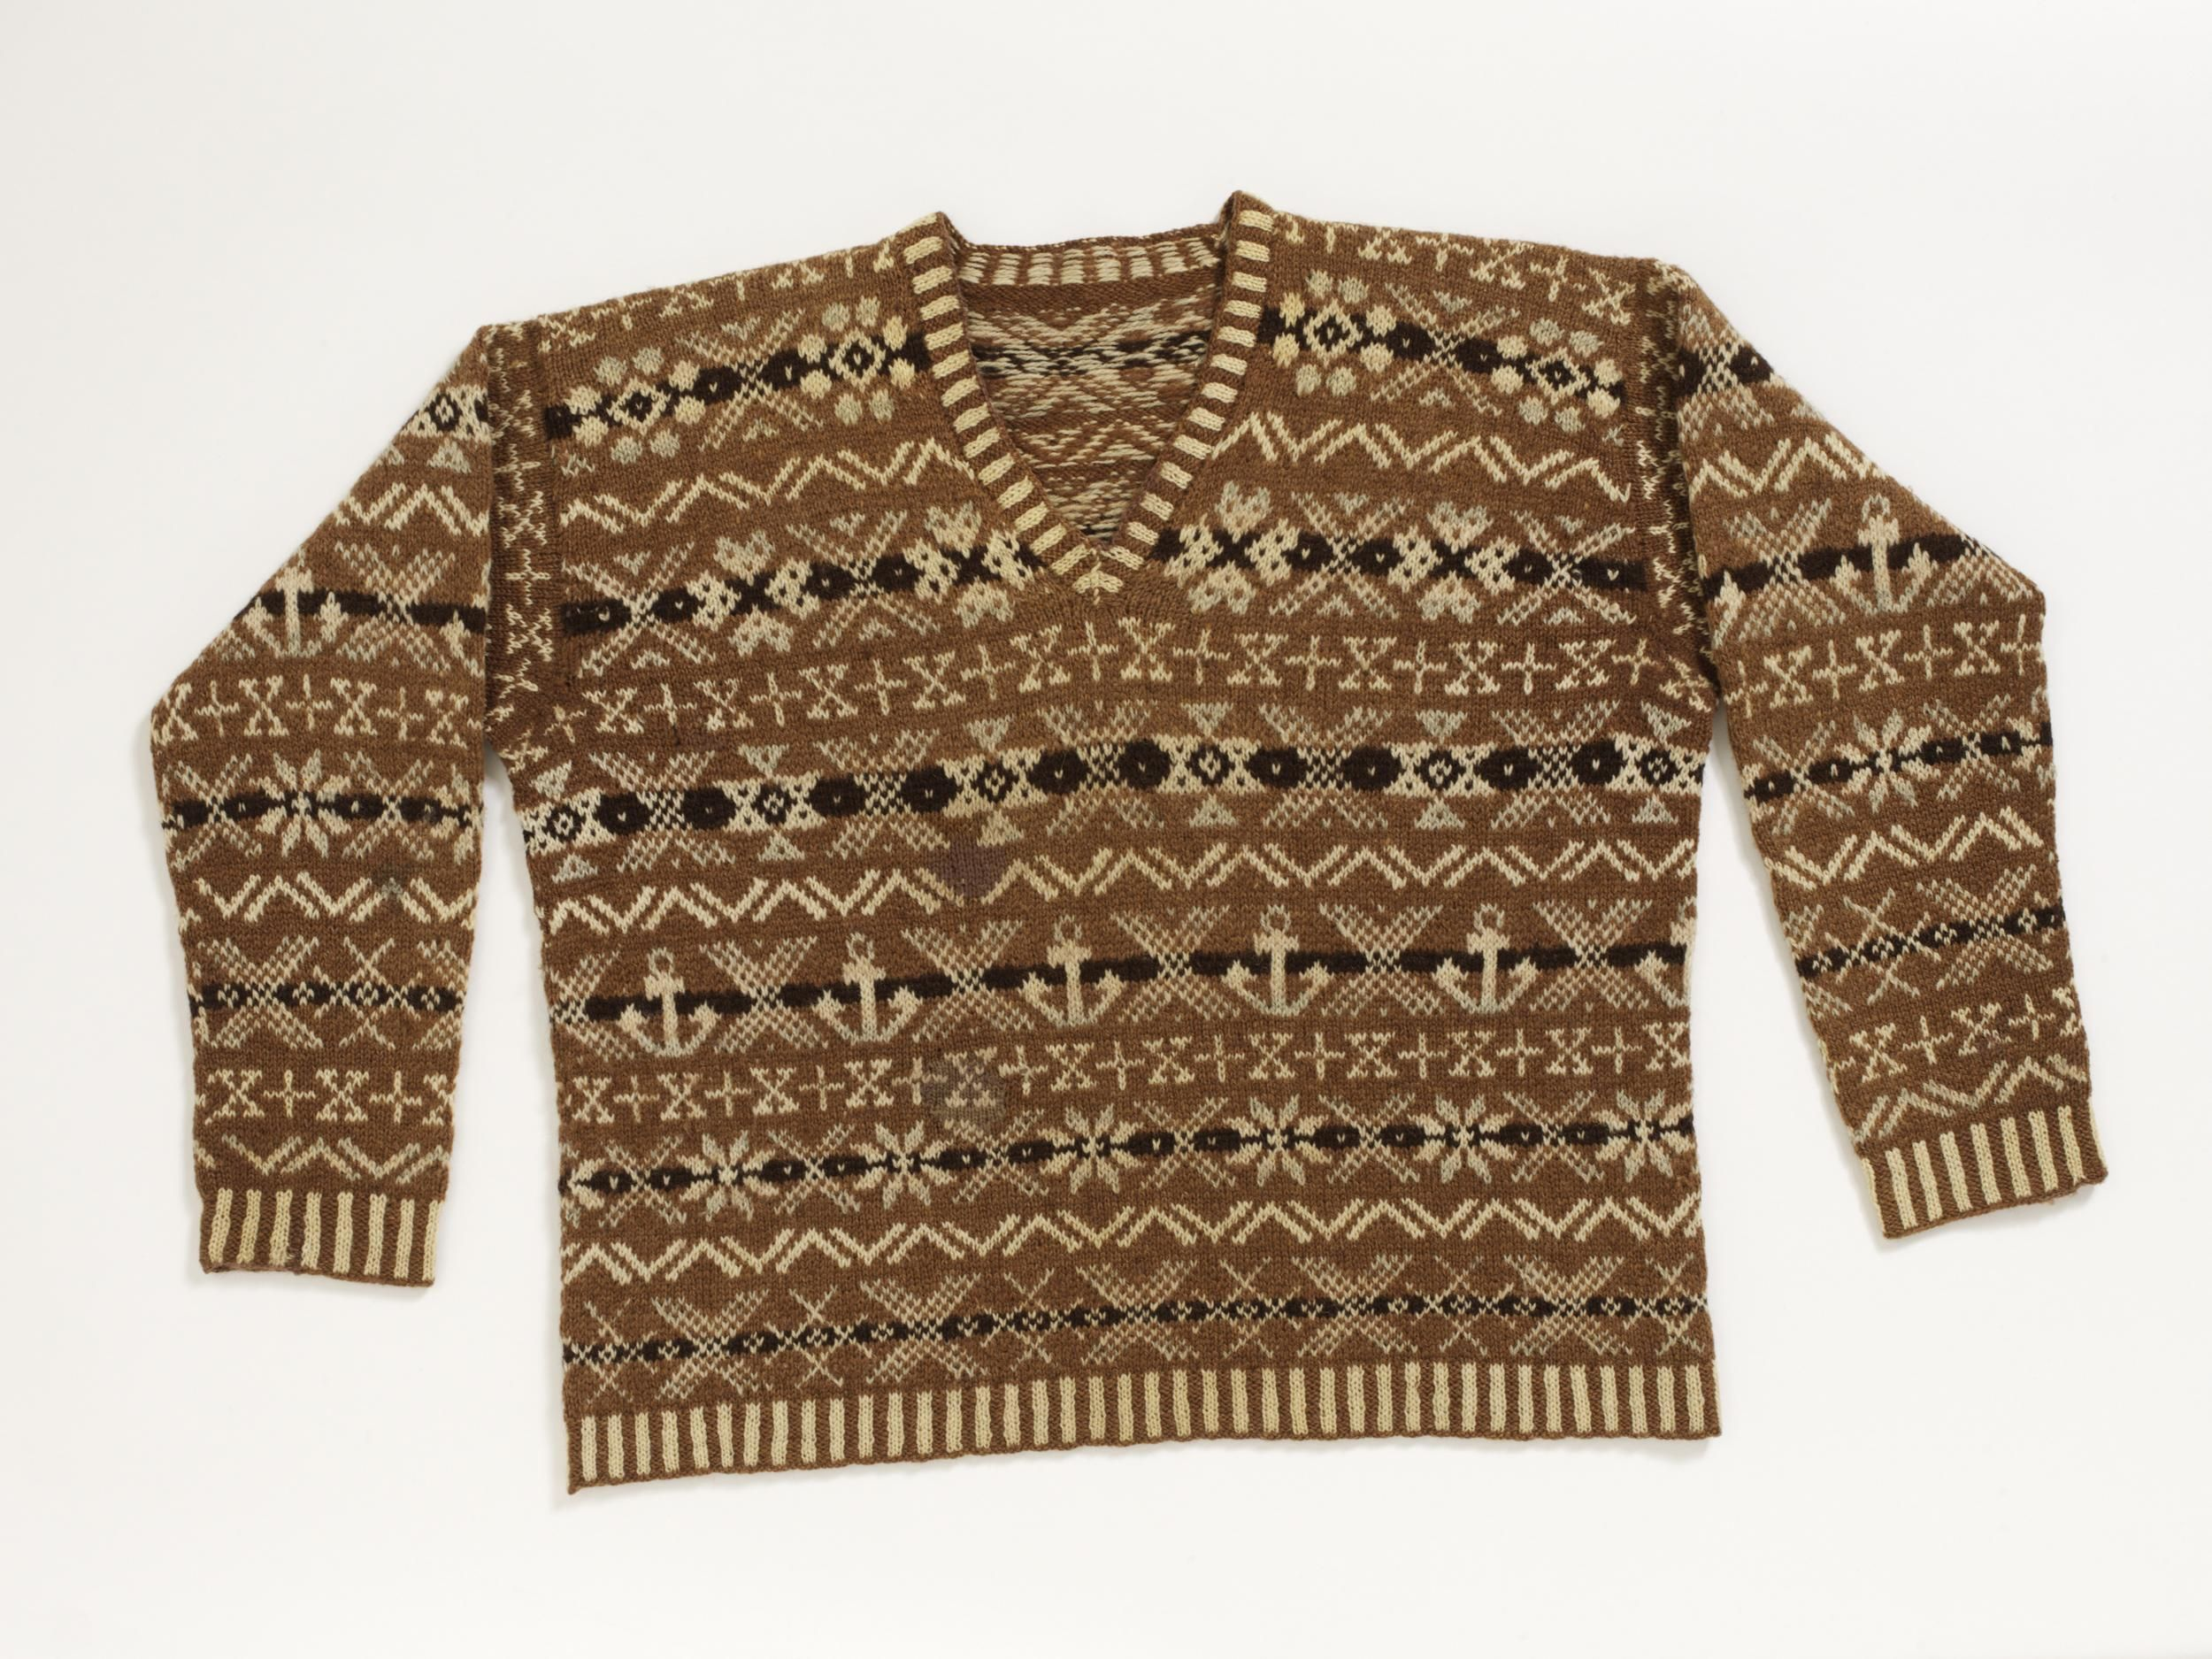 V\u0026A Collection. 1920s Shetland golfing sweater. Donation by